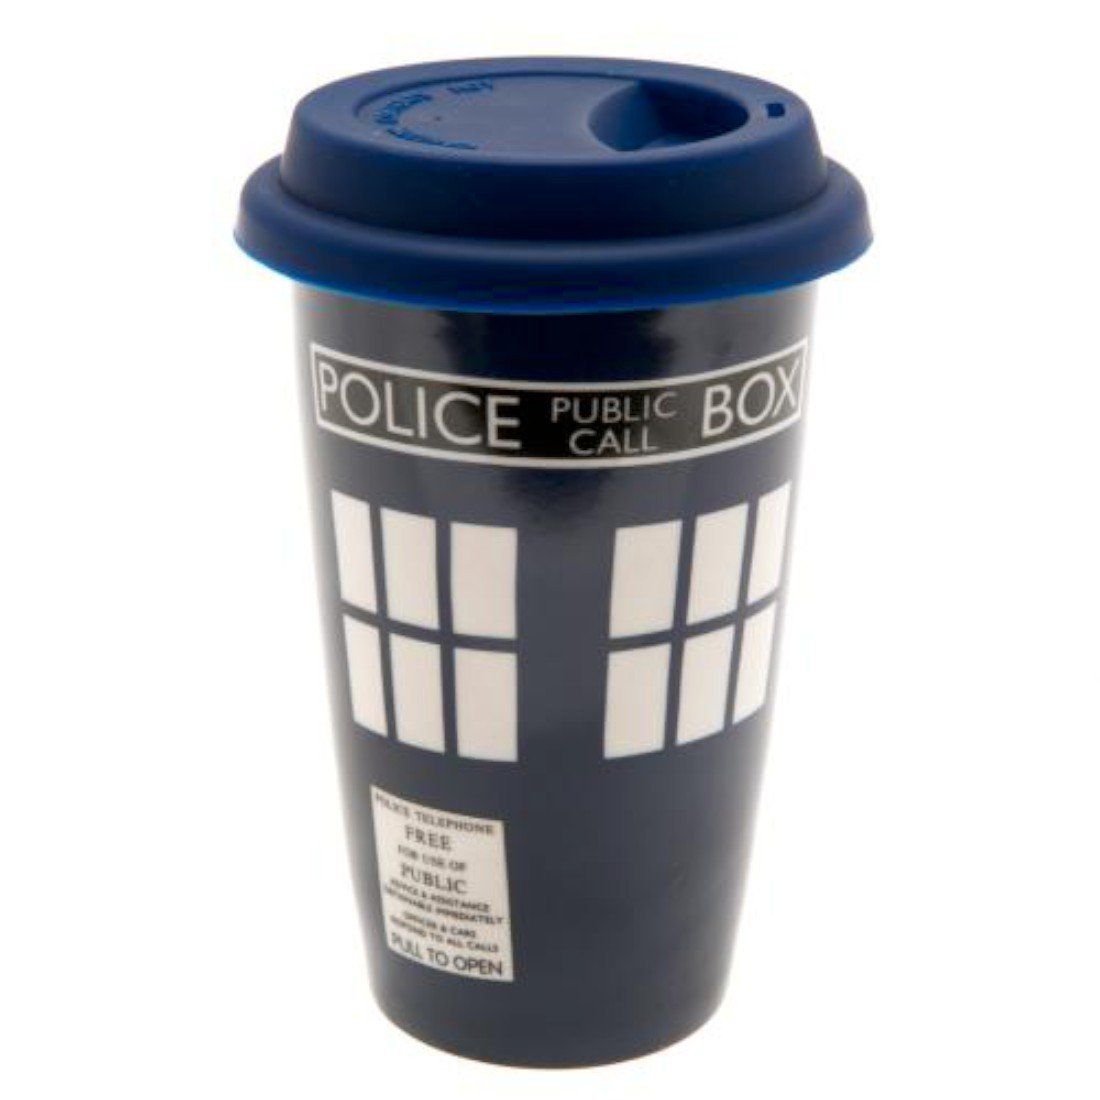 Doctor Who Ceramic Travel Mug Ceramic Travel Mug with Silicone Lid with Hole for Drinking Approximately 14 cm GiftRush